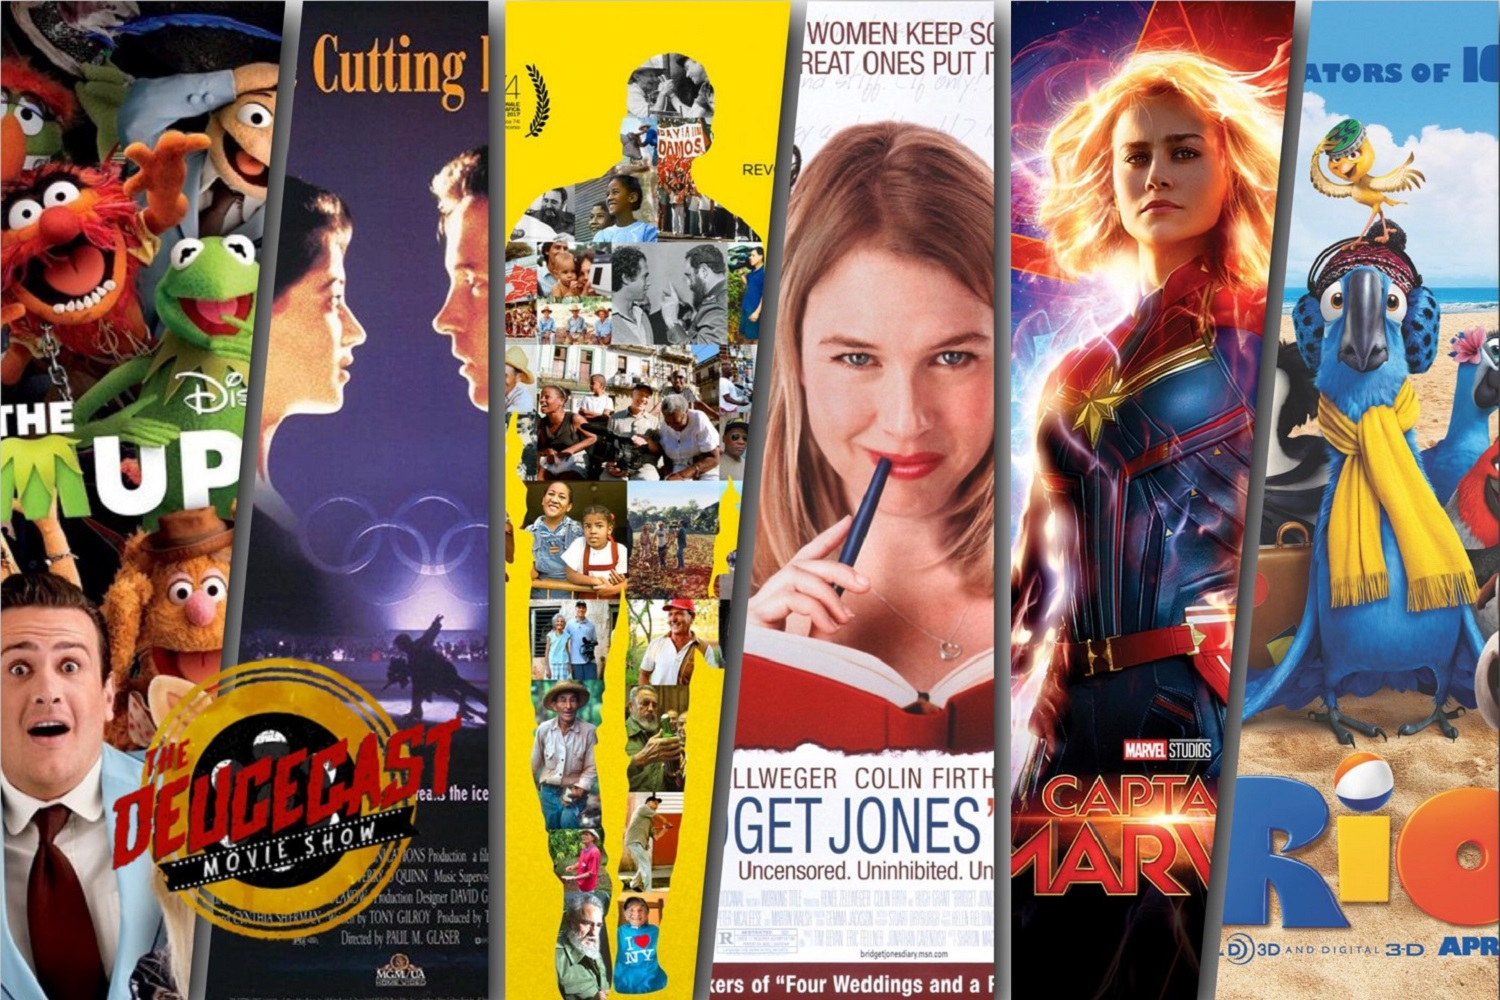 The Deucecast Movie Show #482: Most Meaningful Movies